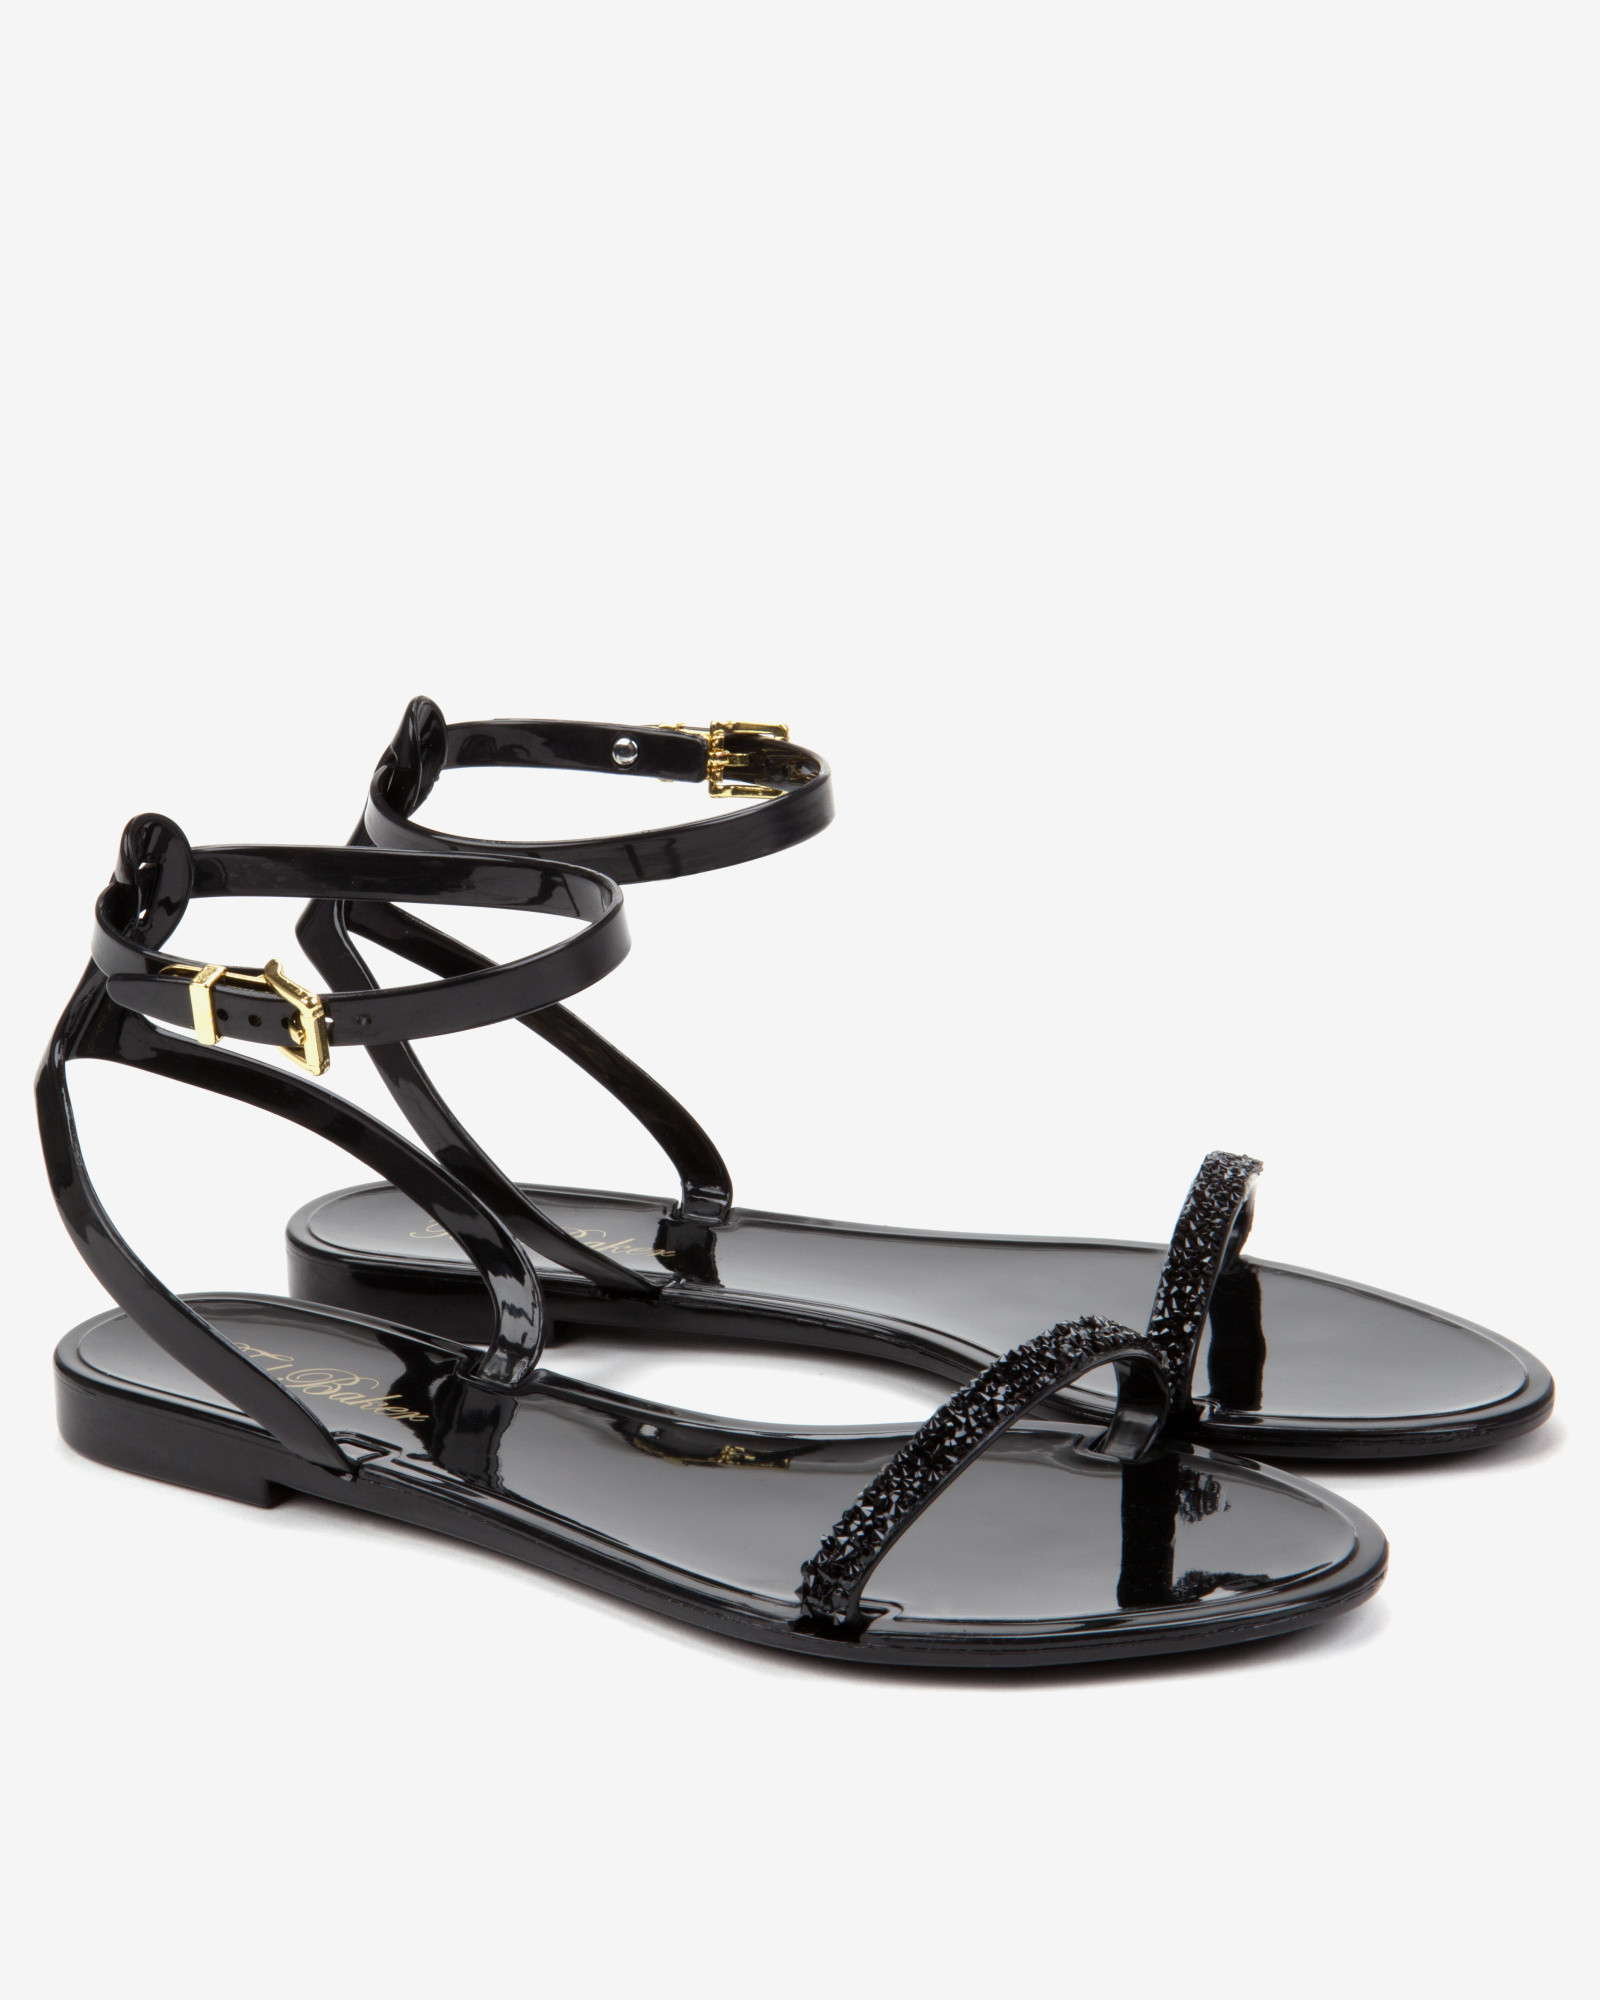 7094a12f44ac Lyst - Ted Baker Ankle Strap Jelly Sandal in Black